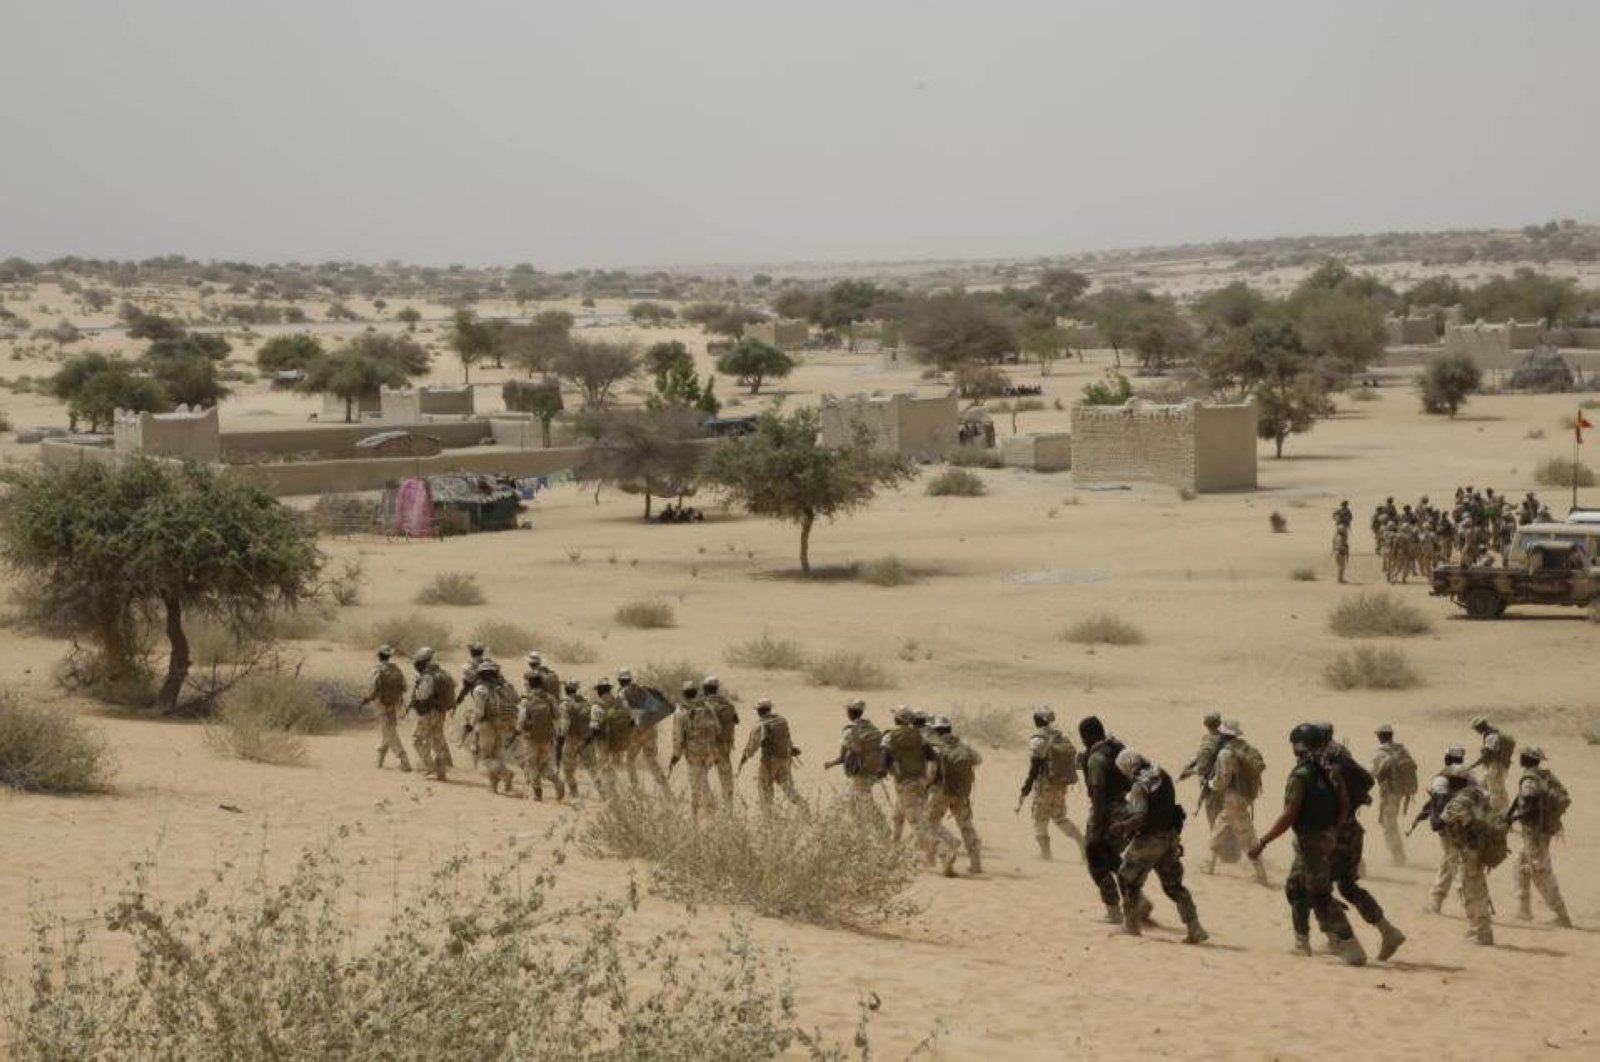 Chadian troops participated along with Nigerian special forces in a hostage rescue exercise in Mao, Chad, March 7, 2015. (AP Photo)